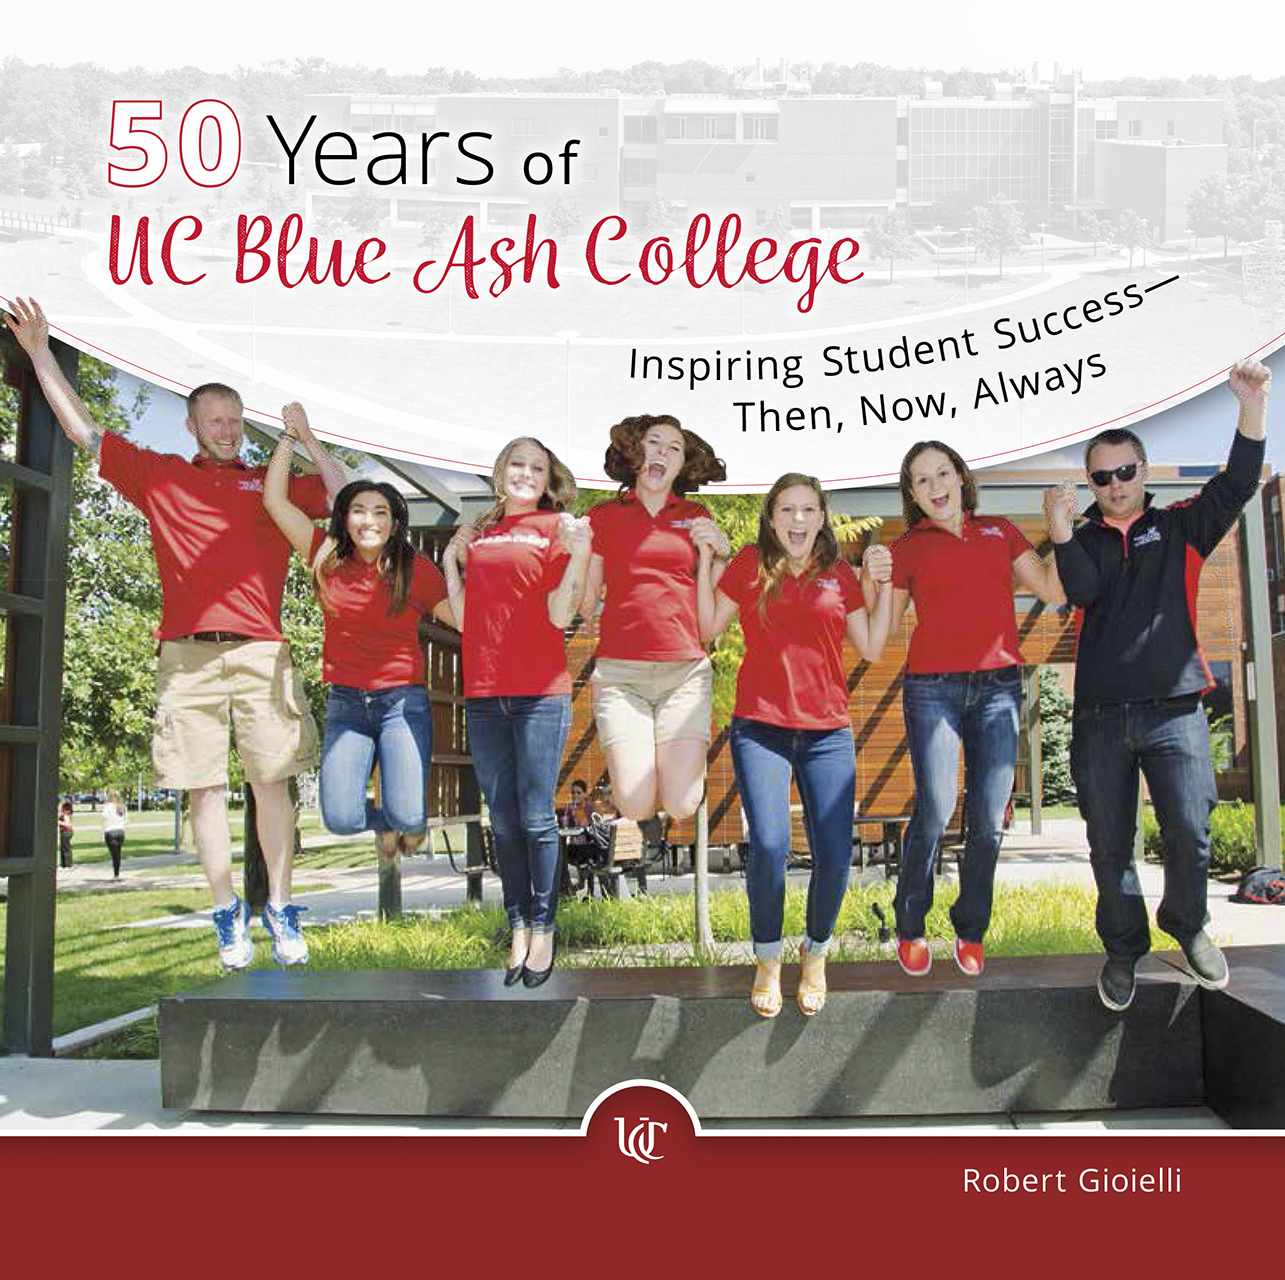 50 Years of UC Blue Ash College